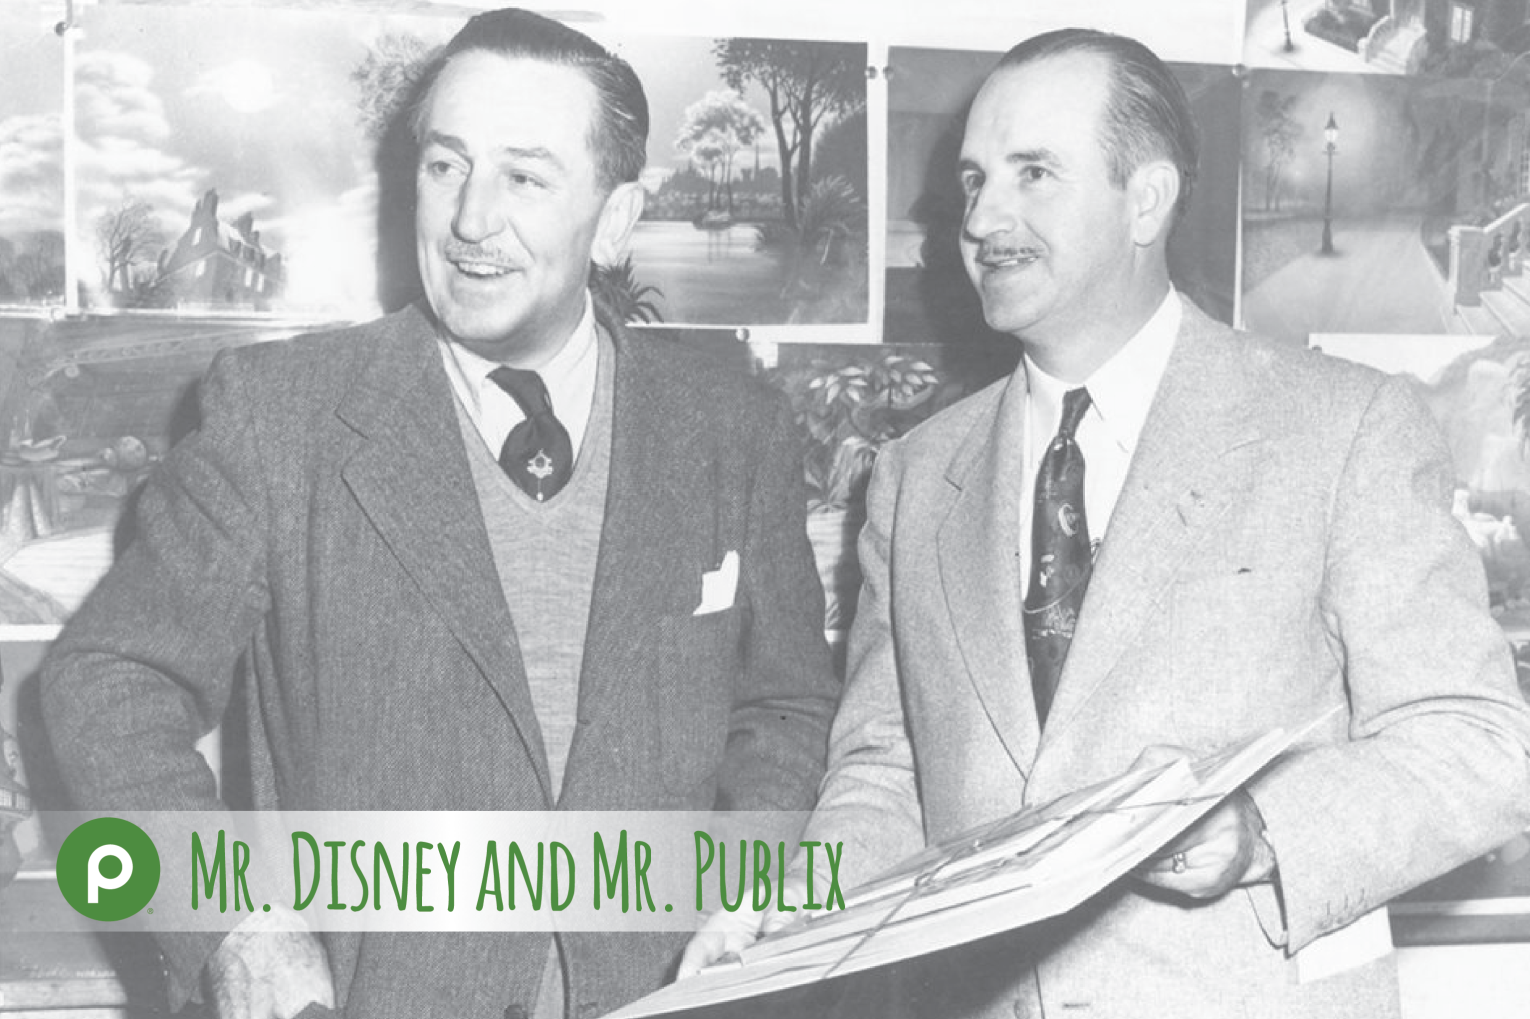 publix founder george jenkins and walt disney founder of the